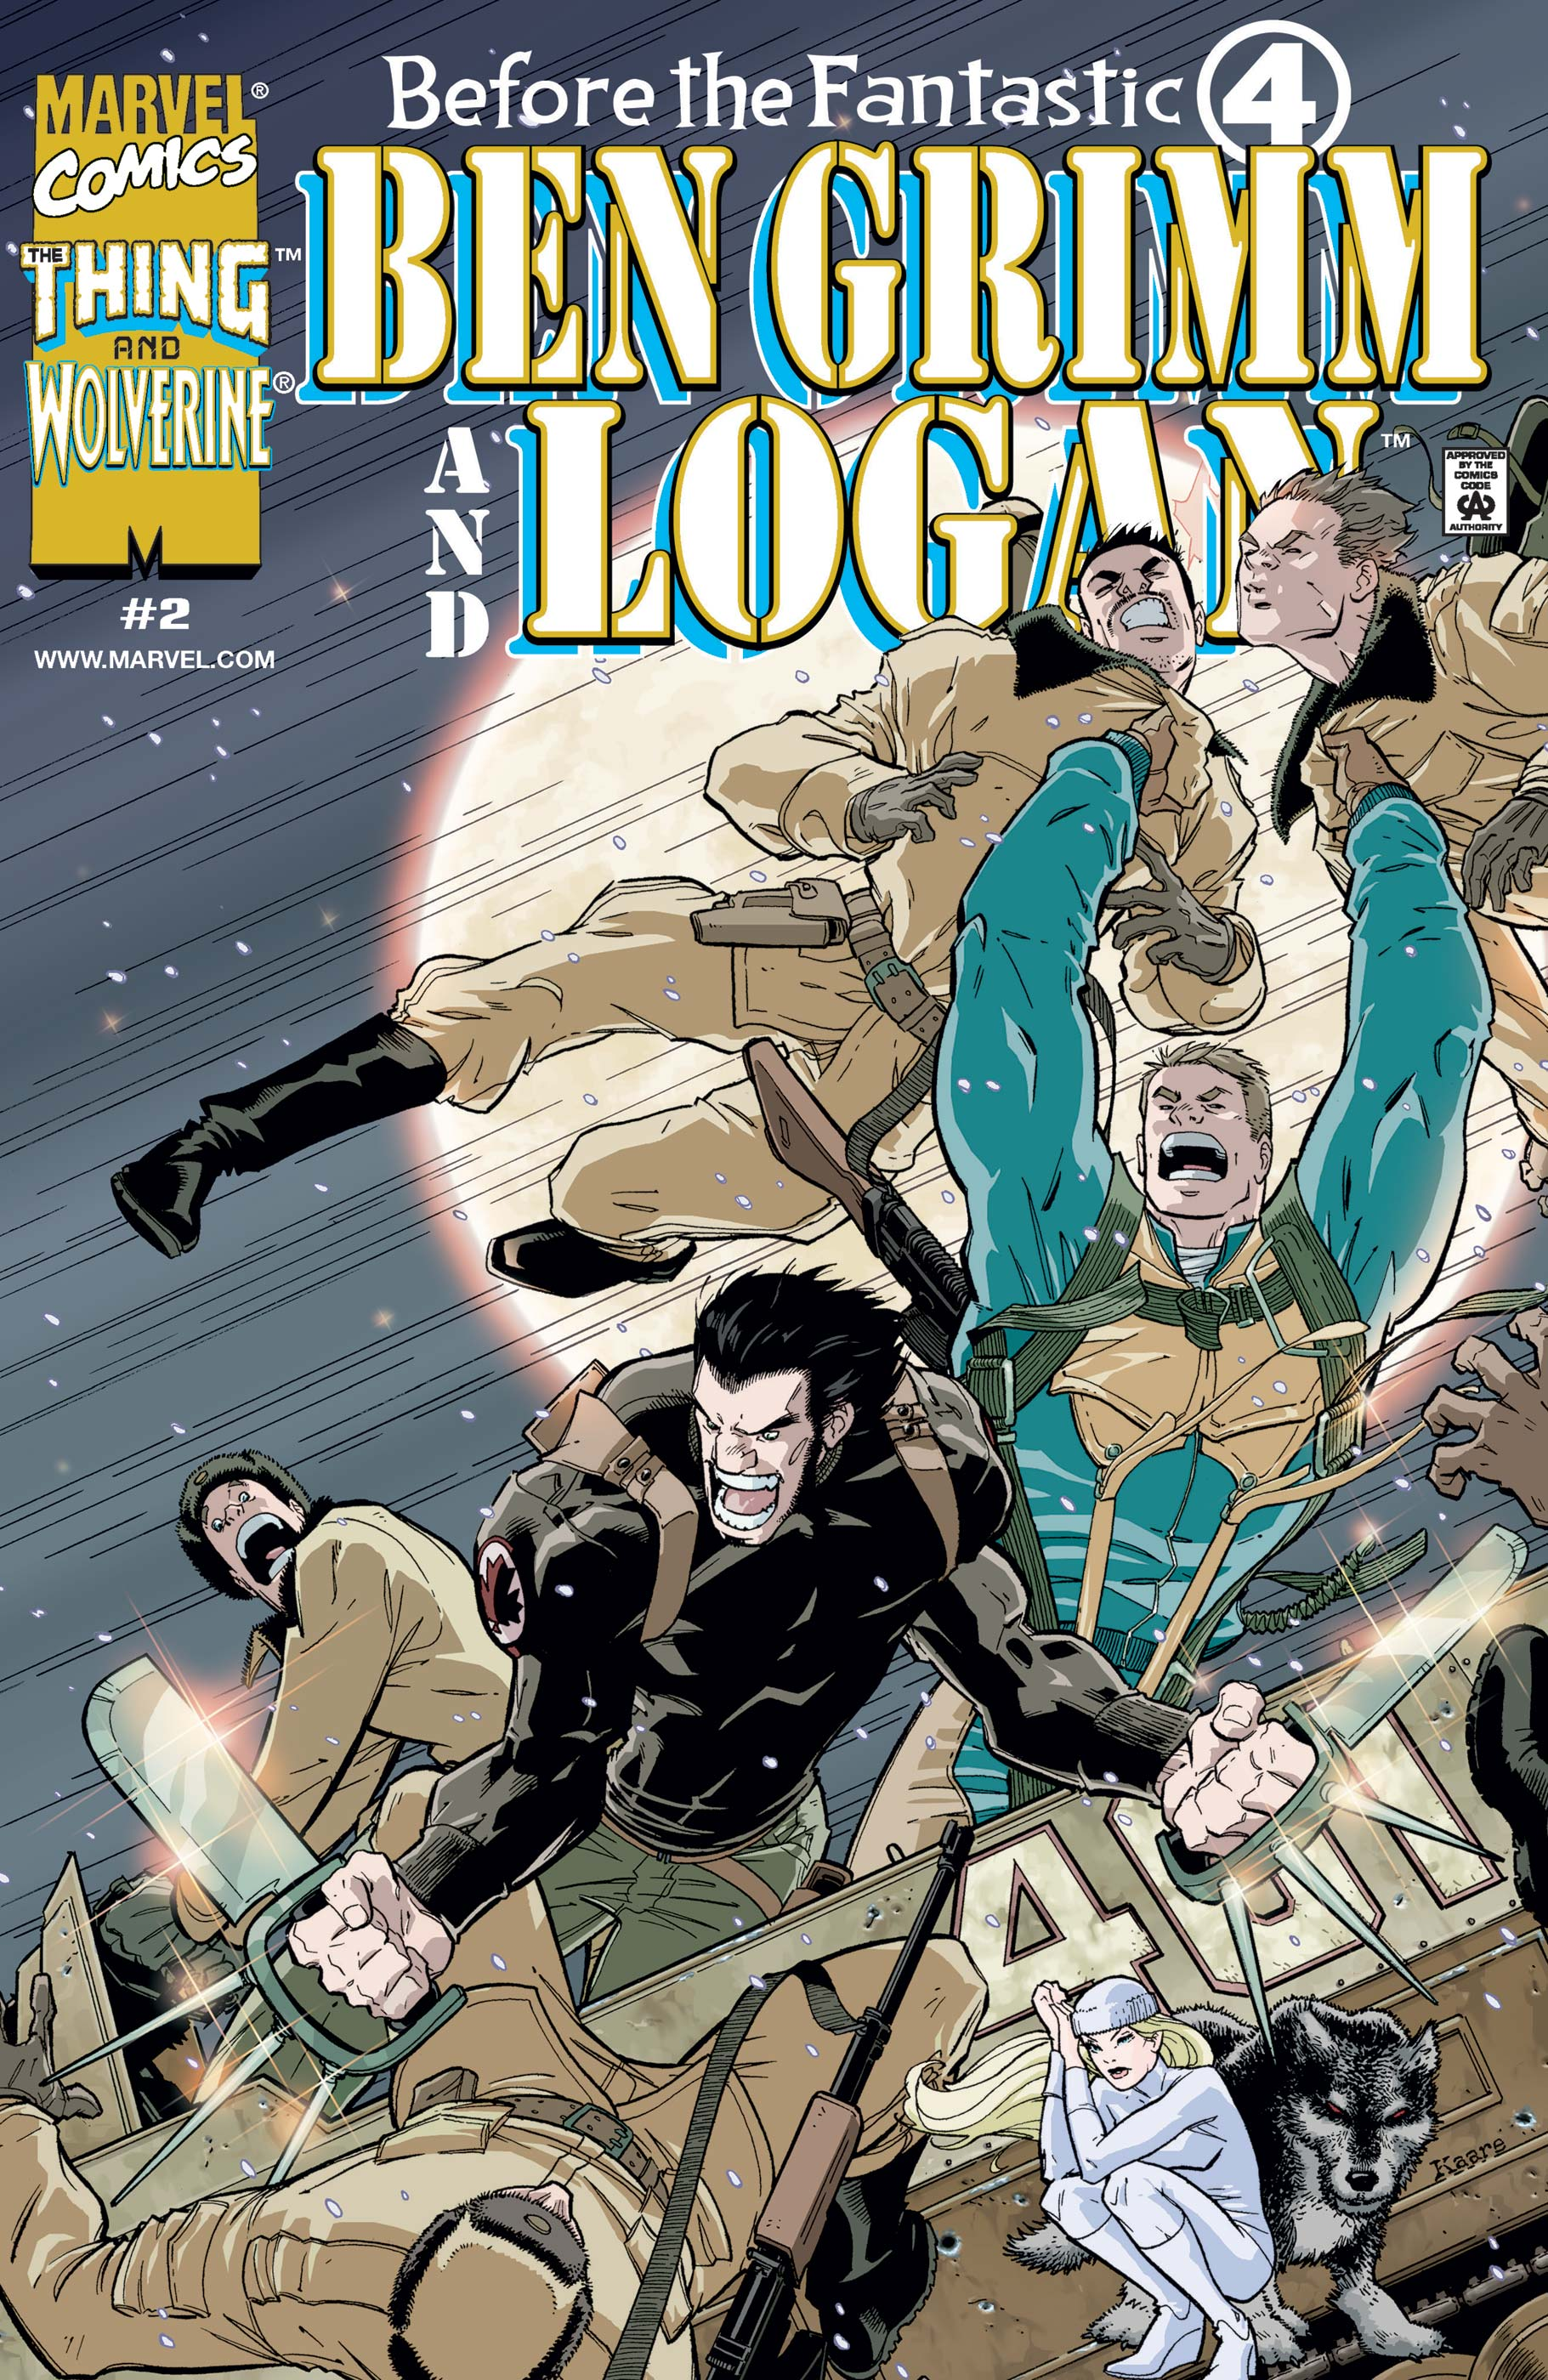 Before the Fantastic Four: Ben Grimm & Logan (2000) #2